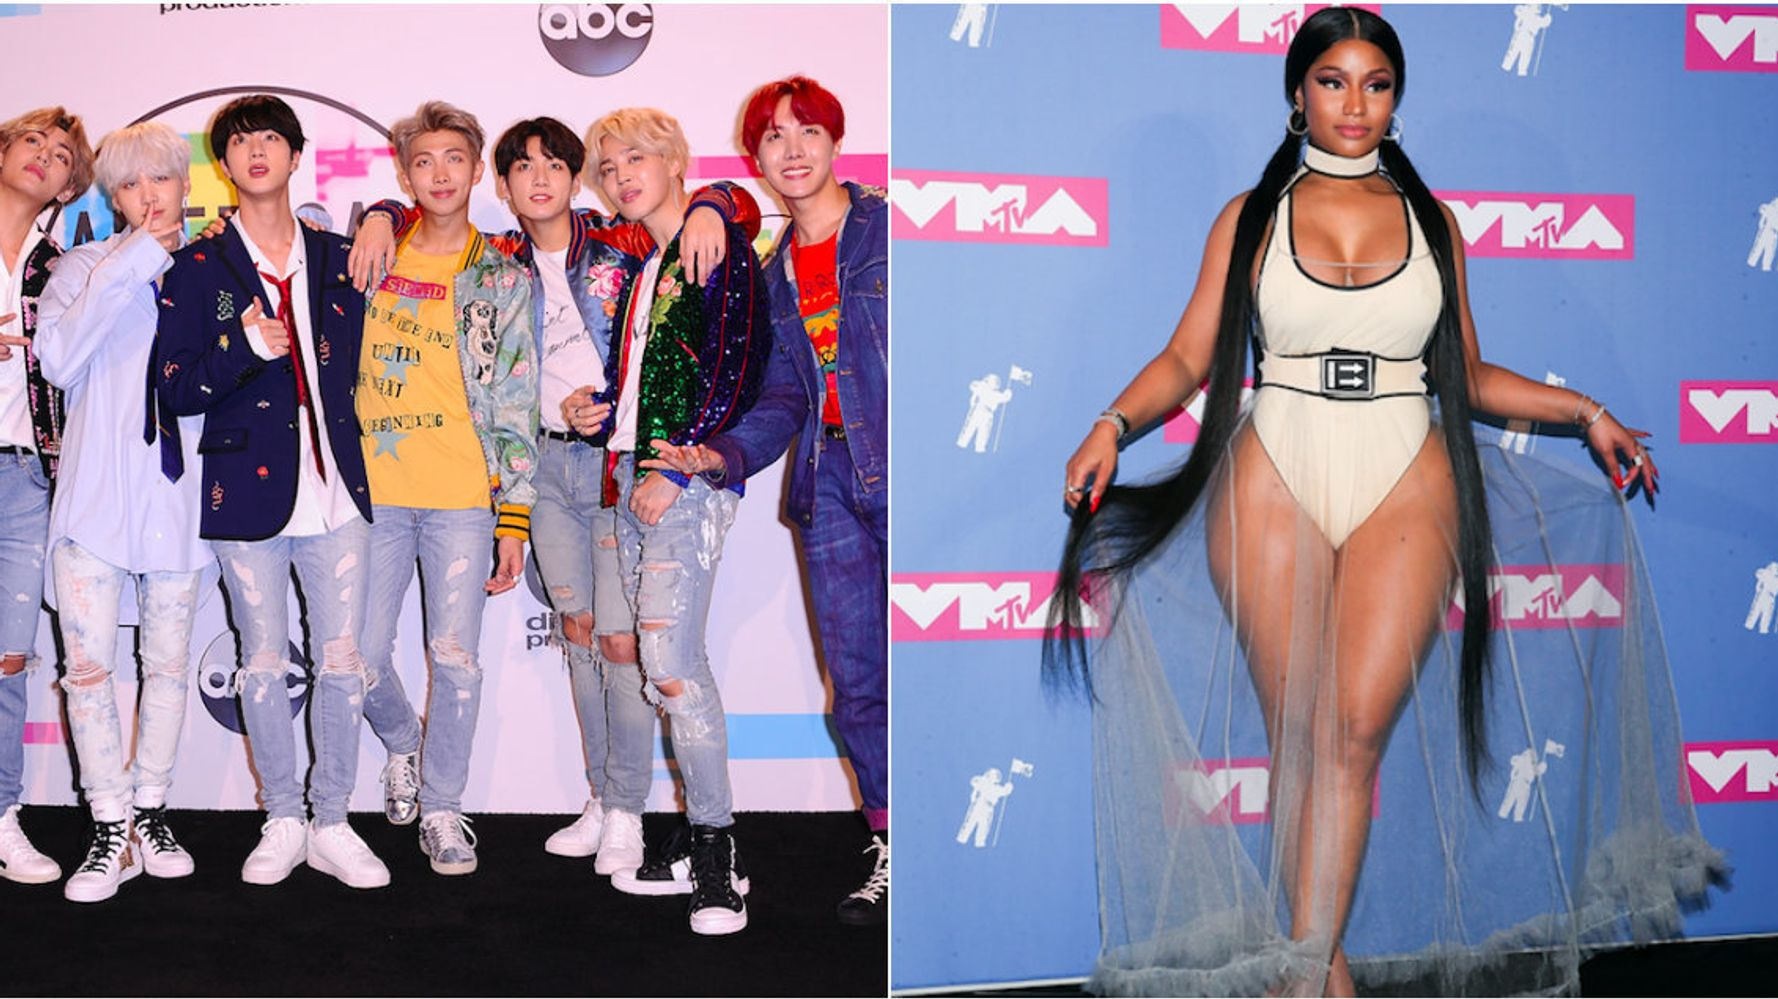 K-Pop Band BTS Drops Song With Nicki Minaj, And The Internet Has No